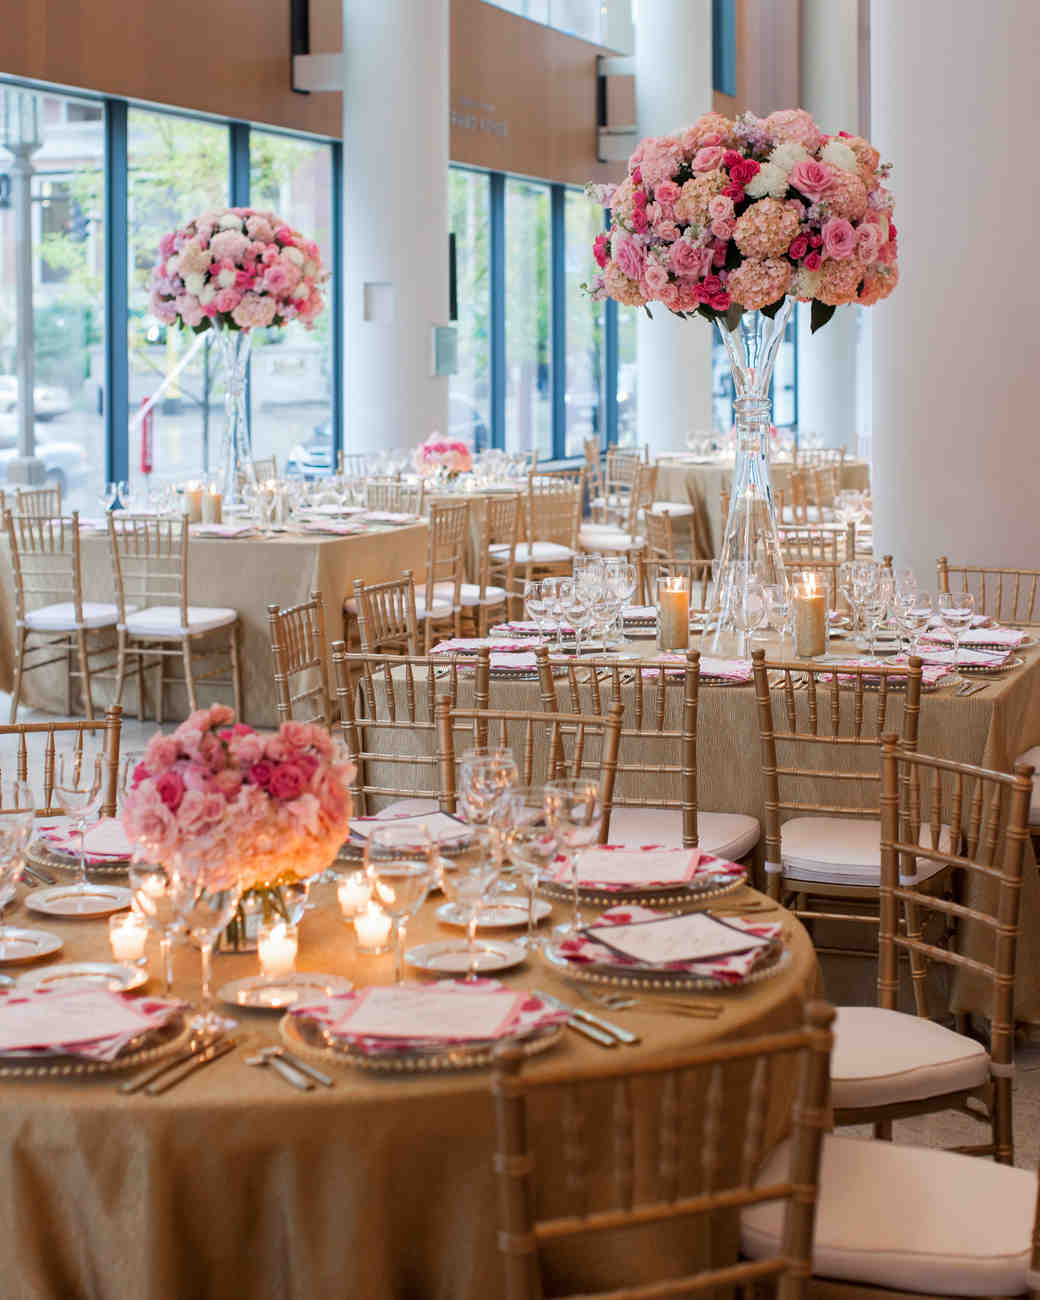 Wedding Centerpieces: Tall Centerpieces That Will Take Your Reception Tables To